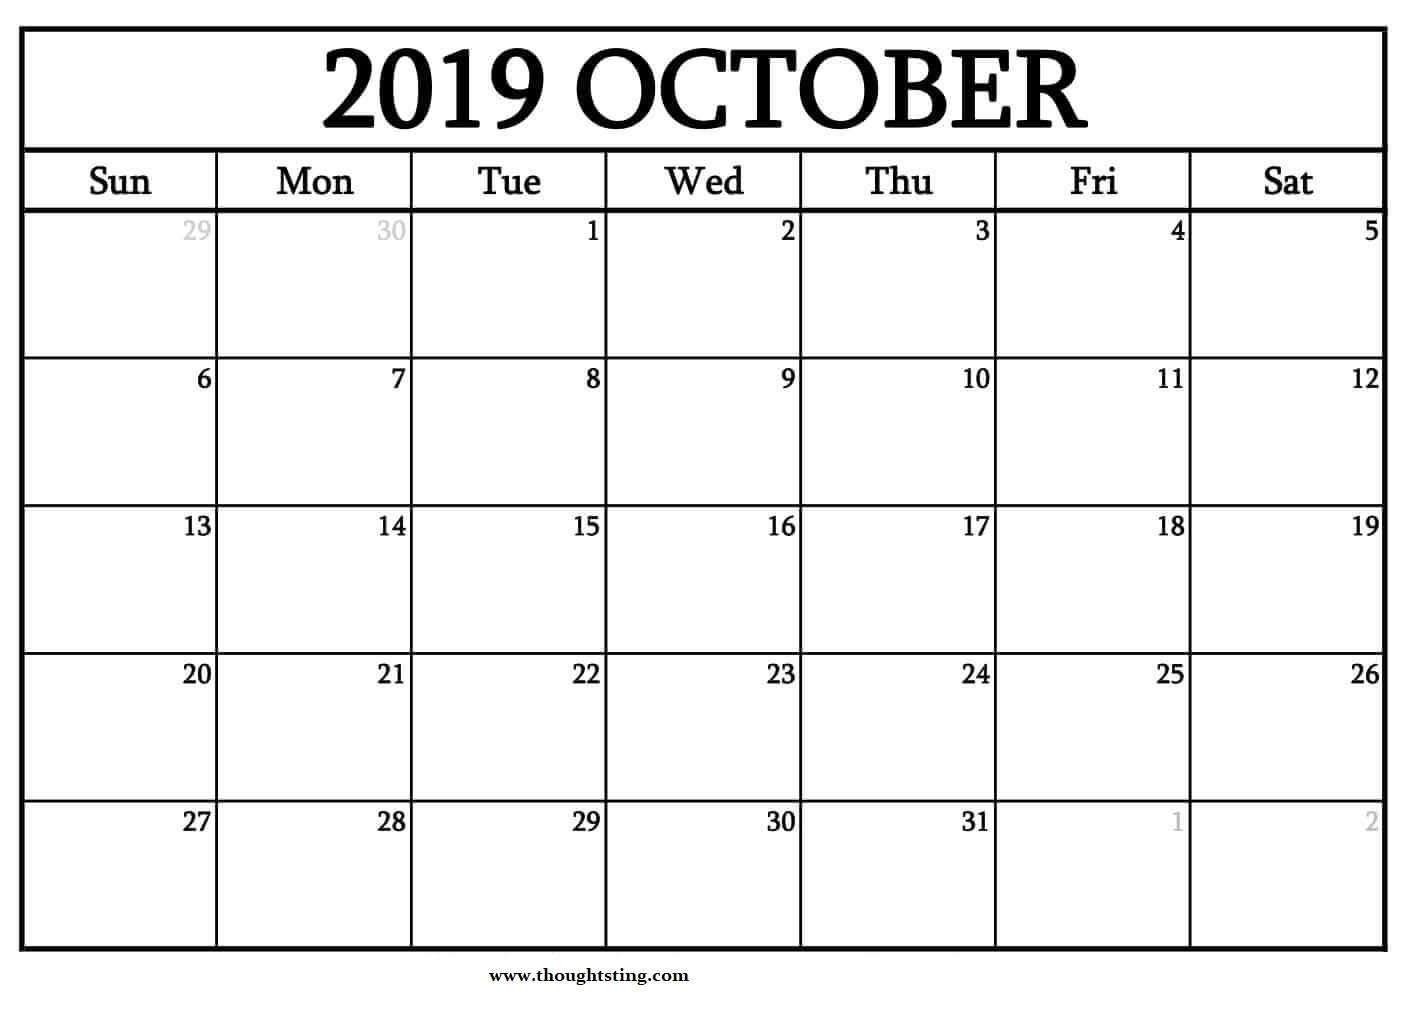 Free October 2019 Calendar With Holidays - Free Printable